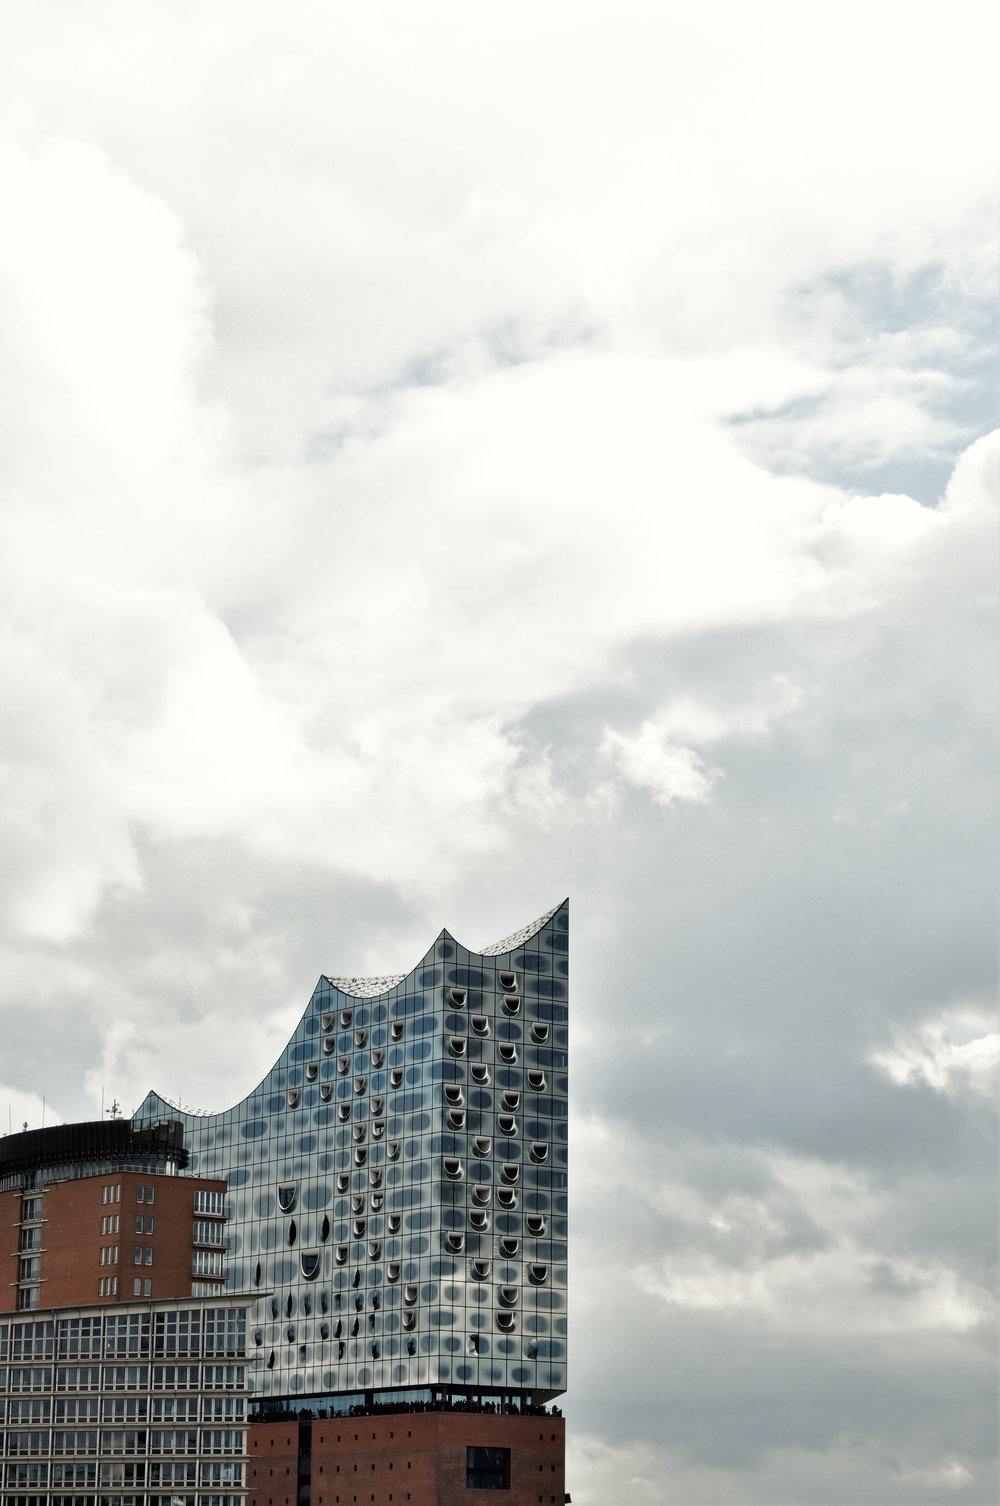 Elbphilharmonie, photo by author